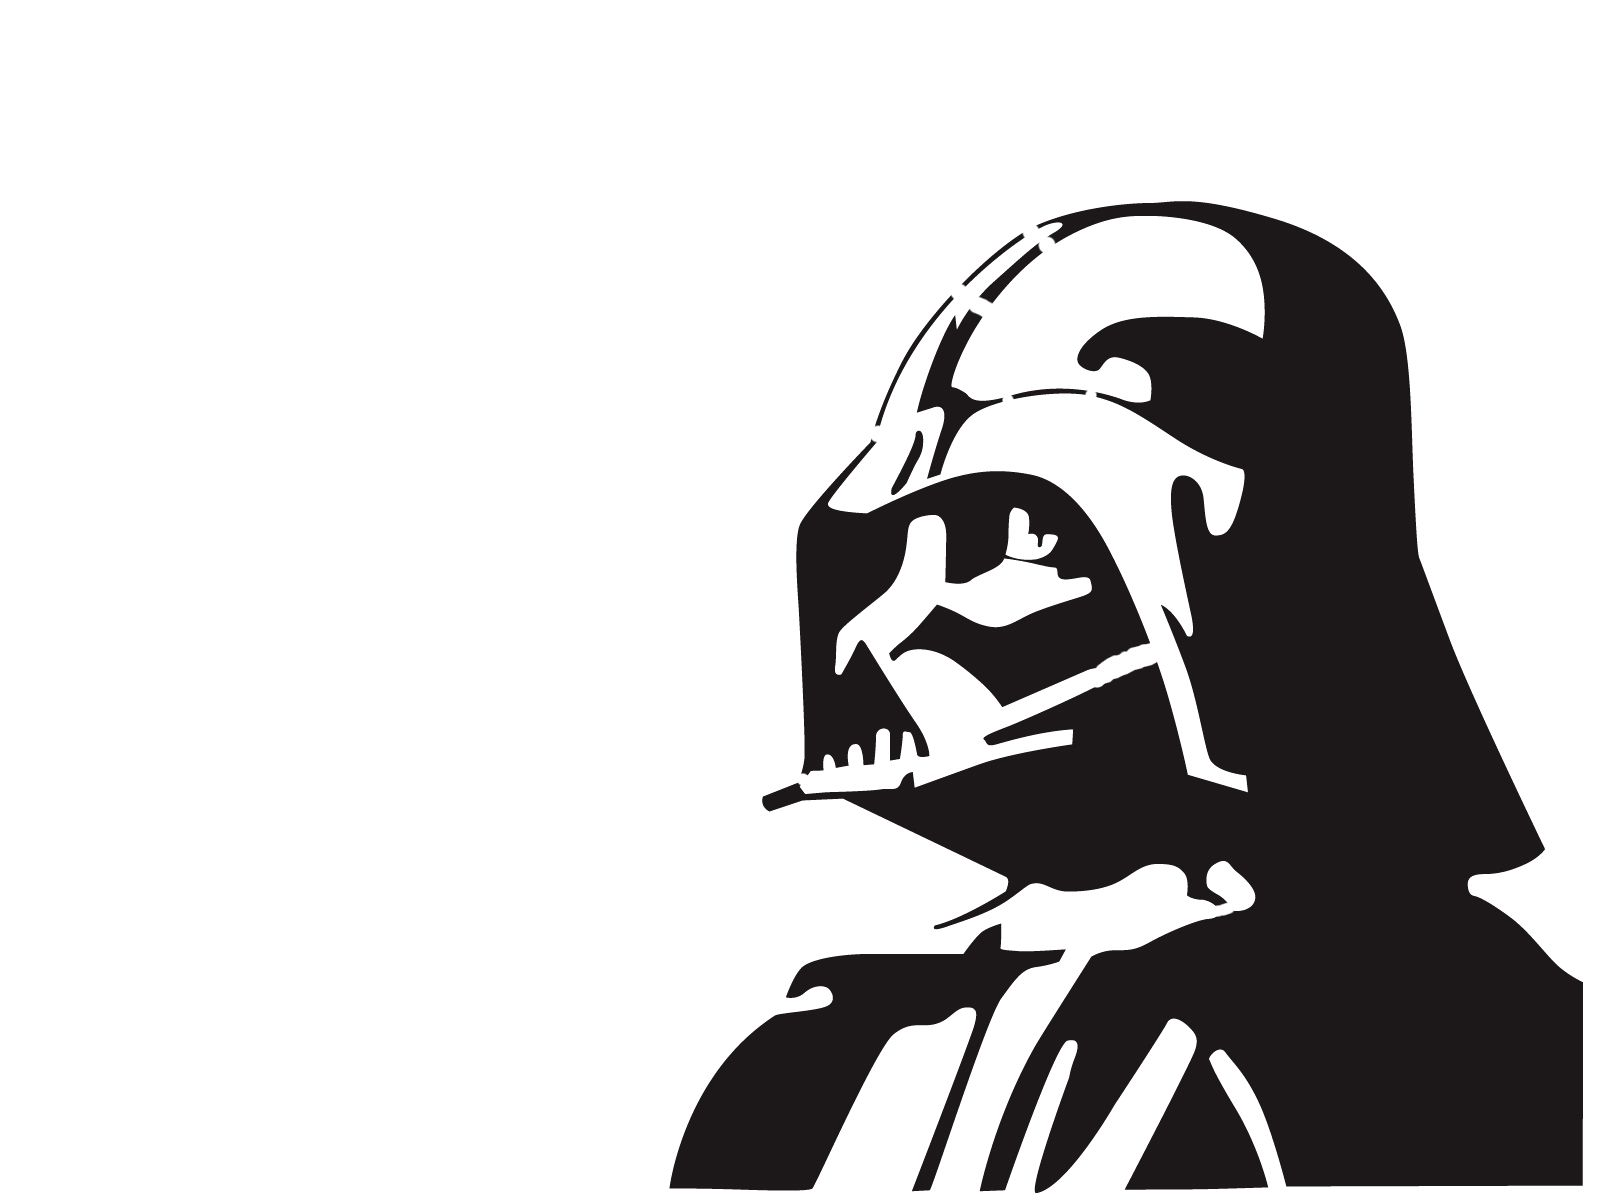 Darth Vader by ~GraffitiWatcher on deviantART | Silouettes and ...